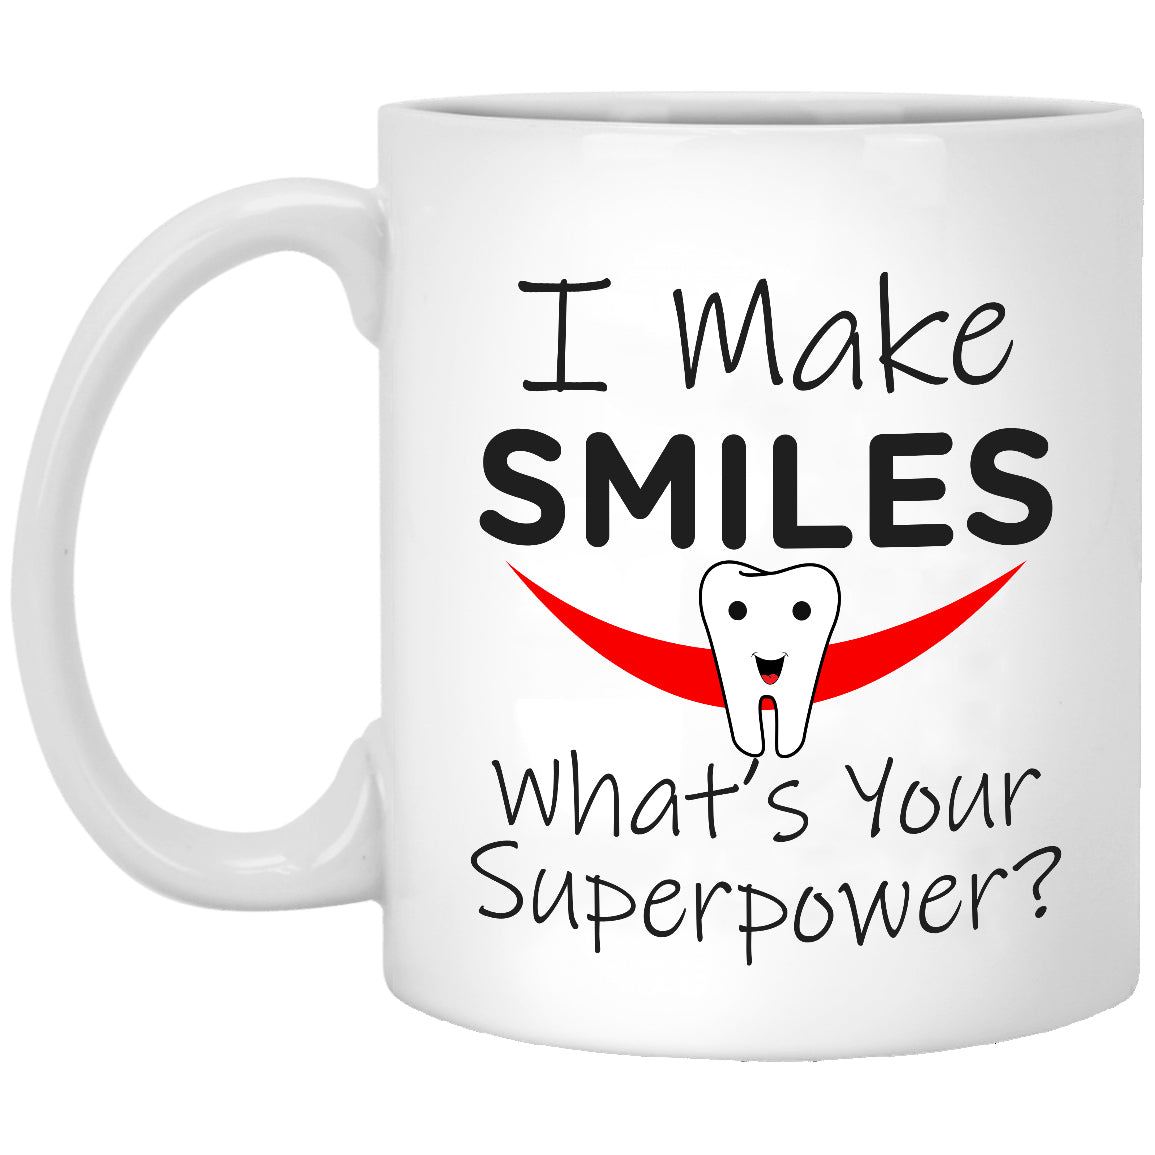 I Make Smiles Whats Your Superpower? - 11 oz. White Mug